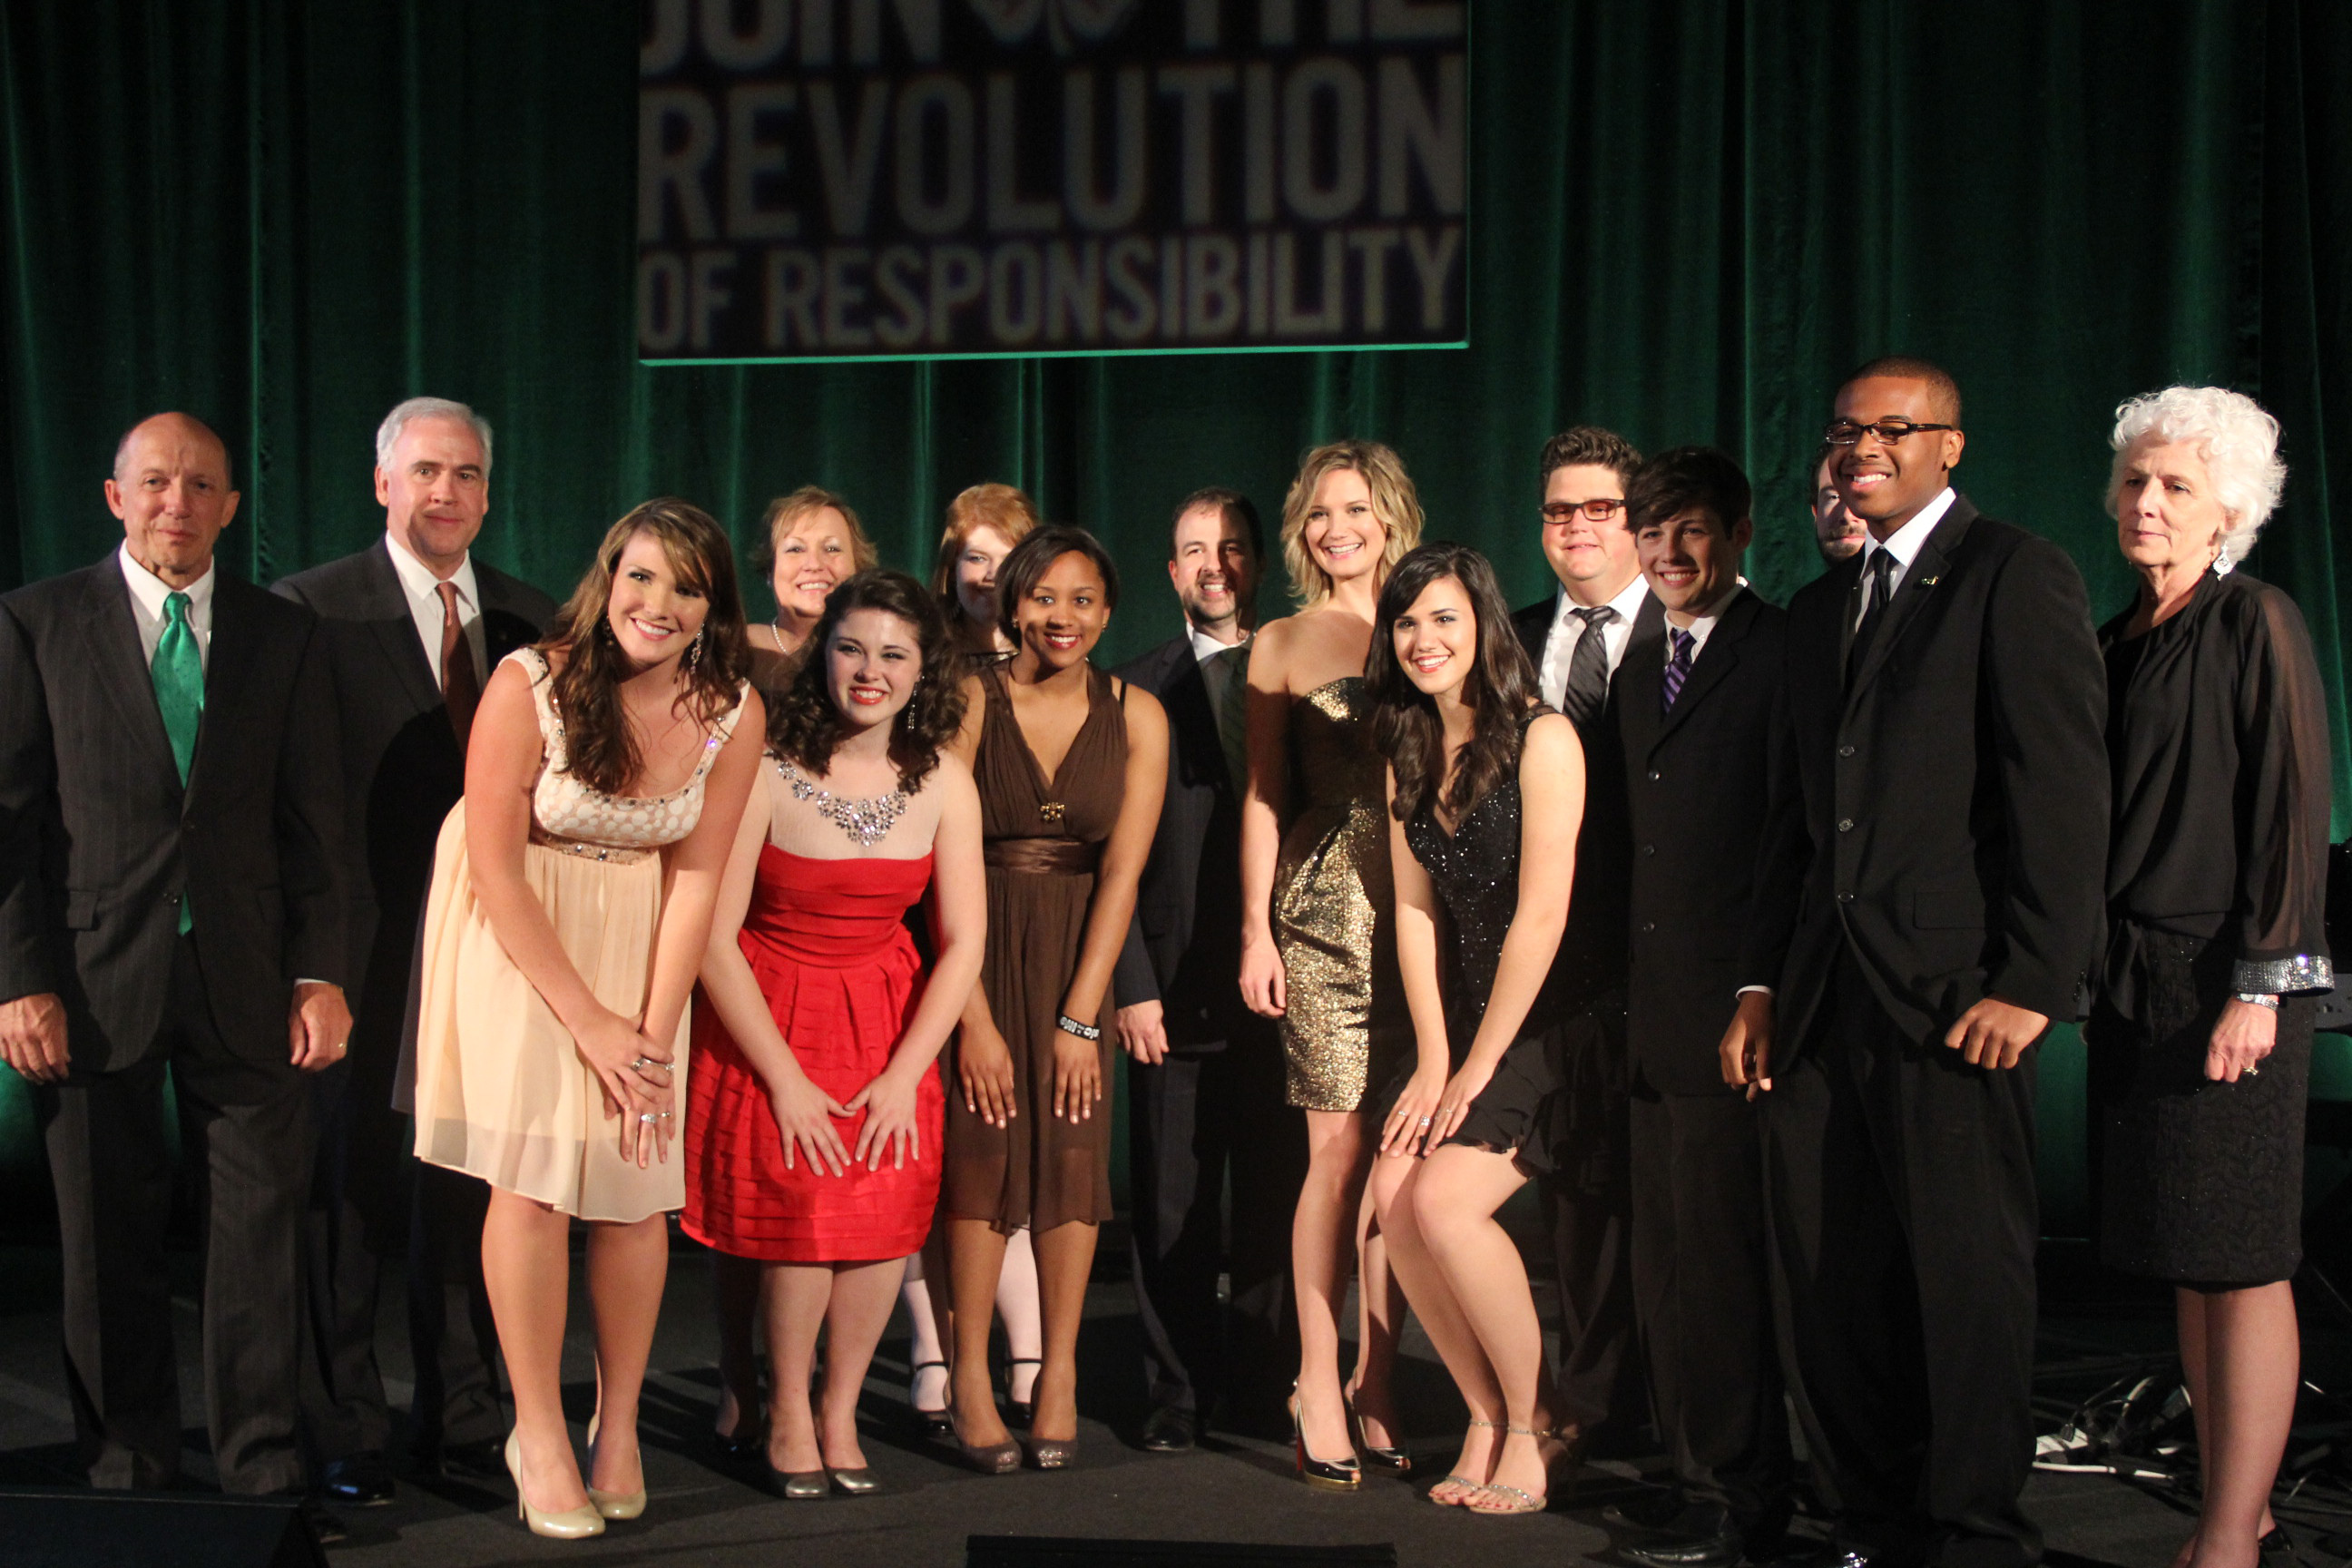 Georgia 4-H Alumna Jennifer Nettles poses with the Clovers and Company performance group in New York.